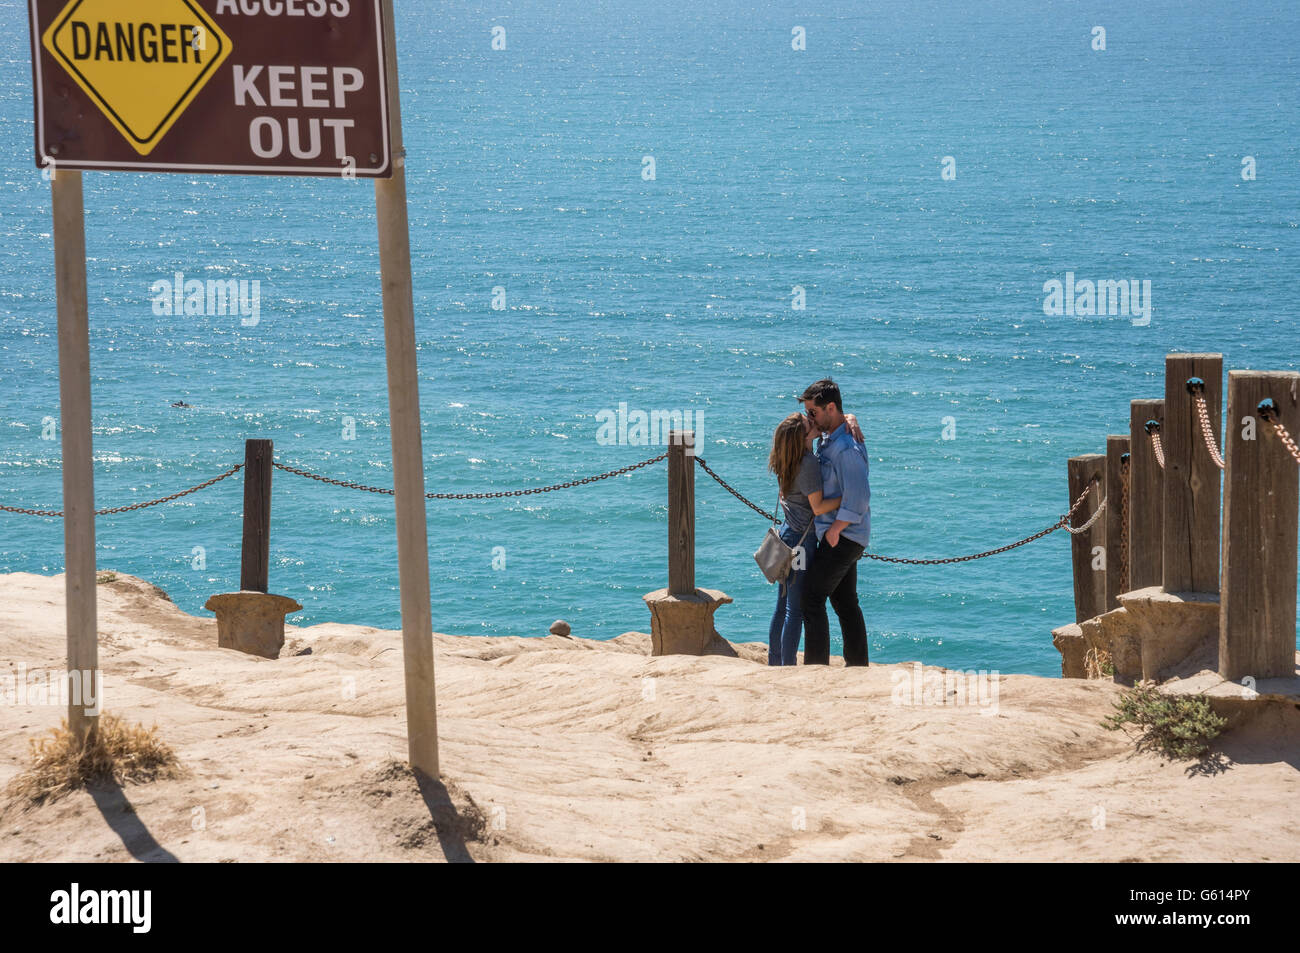 Romantic couple with ironic warning sign - Stock Image